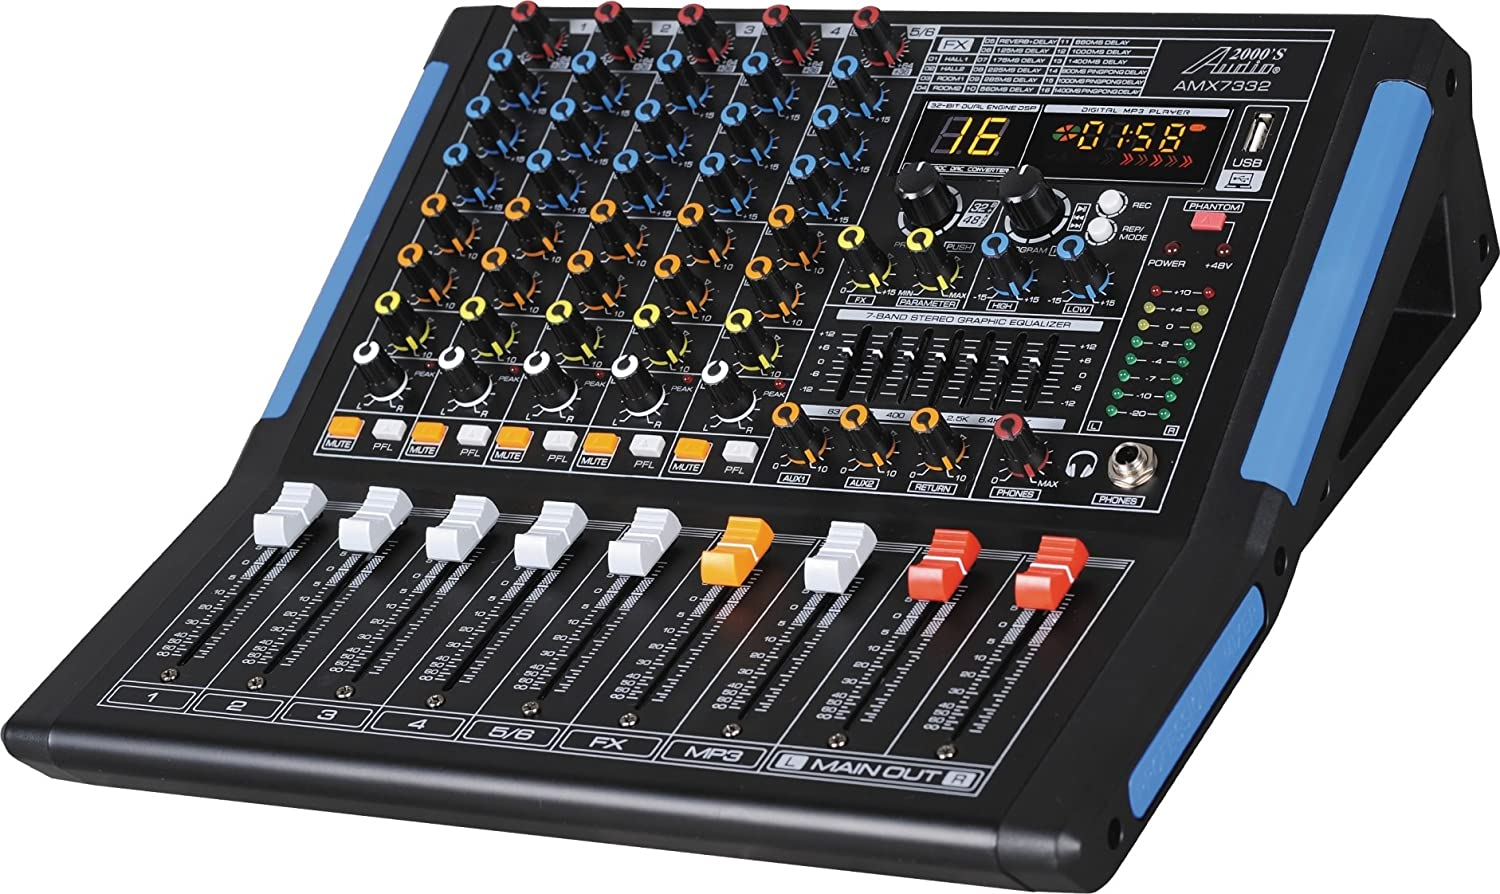 Professional Six-Channel Audio Mixer with USB Interface, Bluetooth, and DSP Sound Effects H & F Technologies Inc. AMX7332